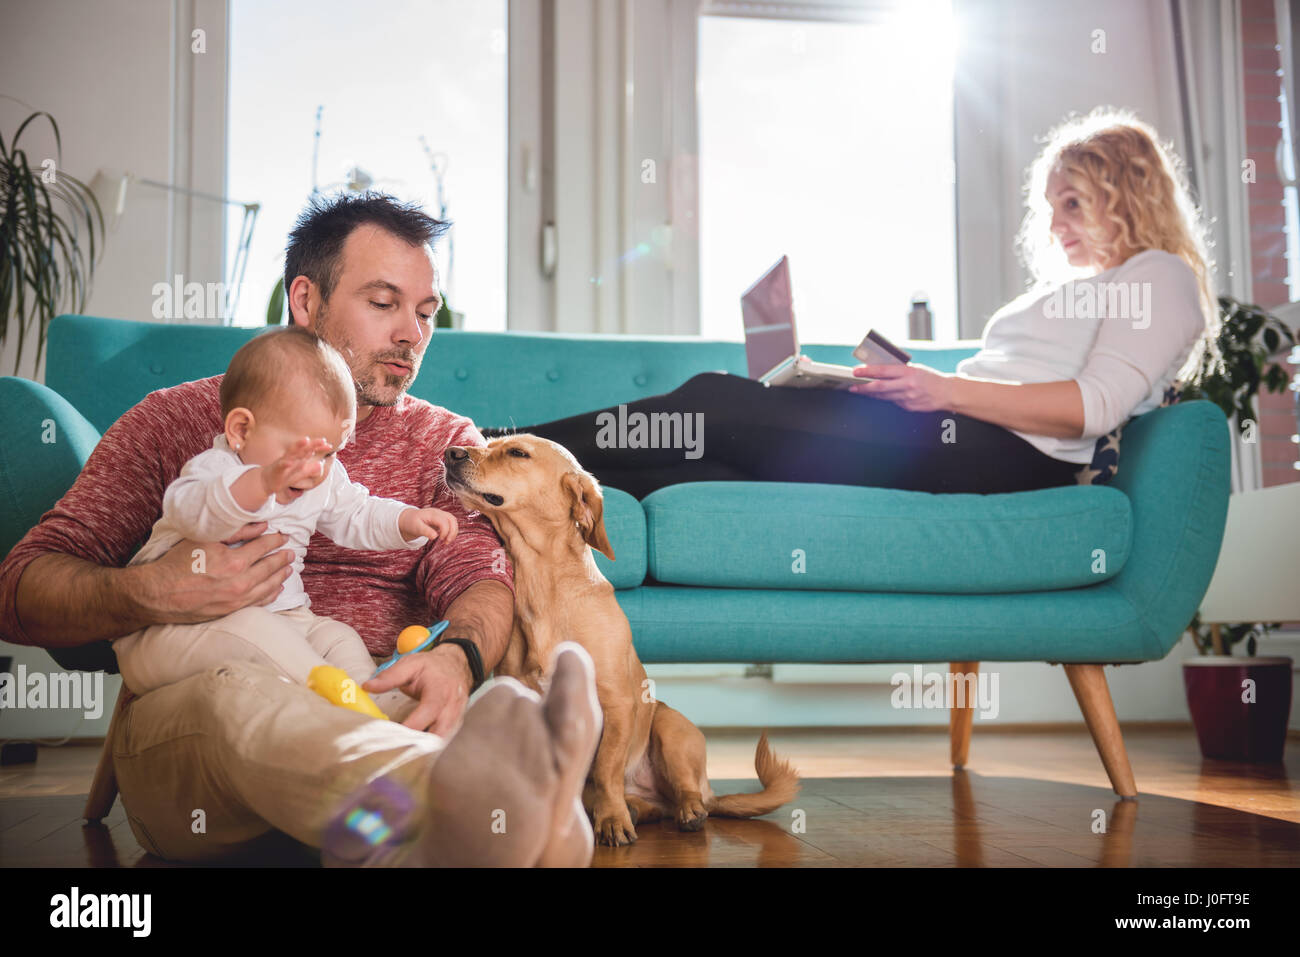 Father sitting on the floor and with baby in his arms playing with dog while wife sitting on sofa and doing online - Stock Image